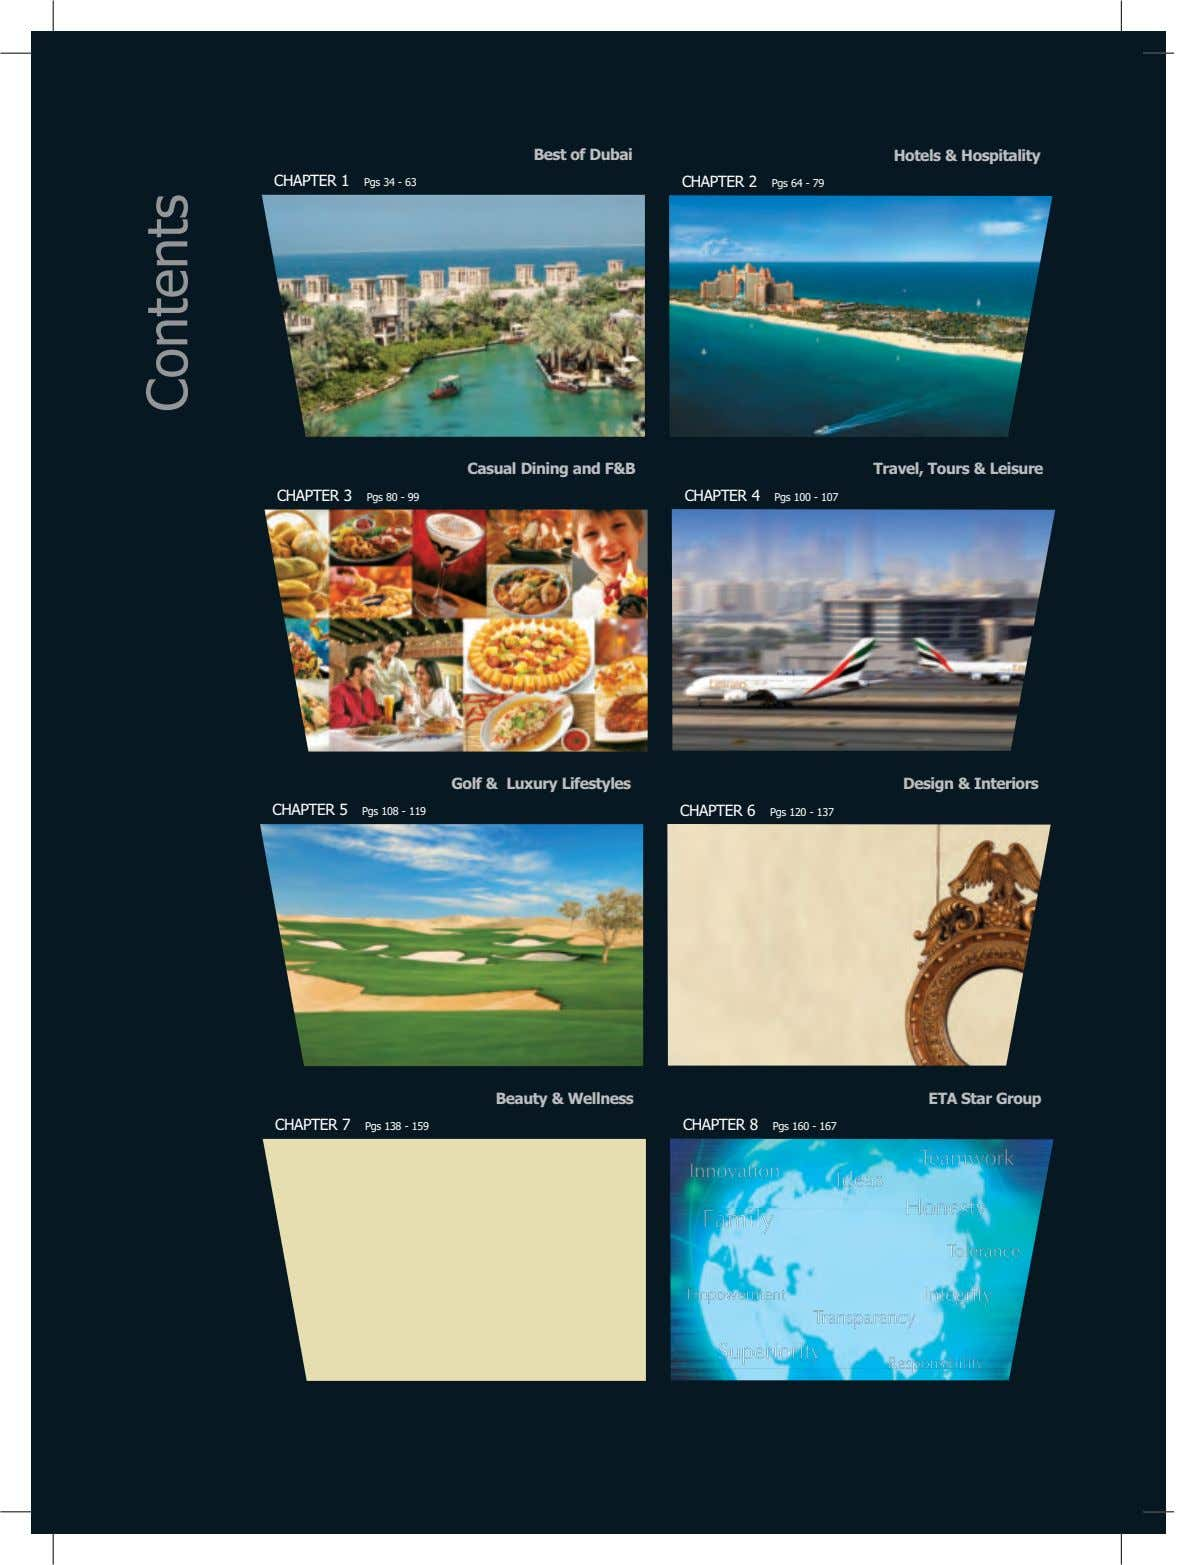 Best of Dubai Hotels & Hospitality CHAPTER 1 Pgs 34 - 63 CHAPTER 2 Pgs 64